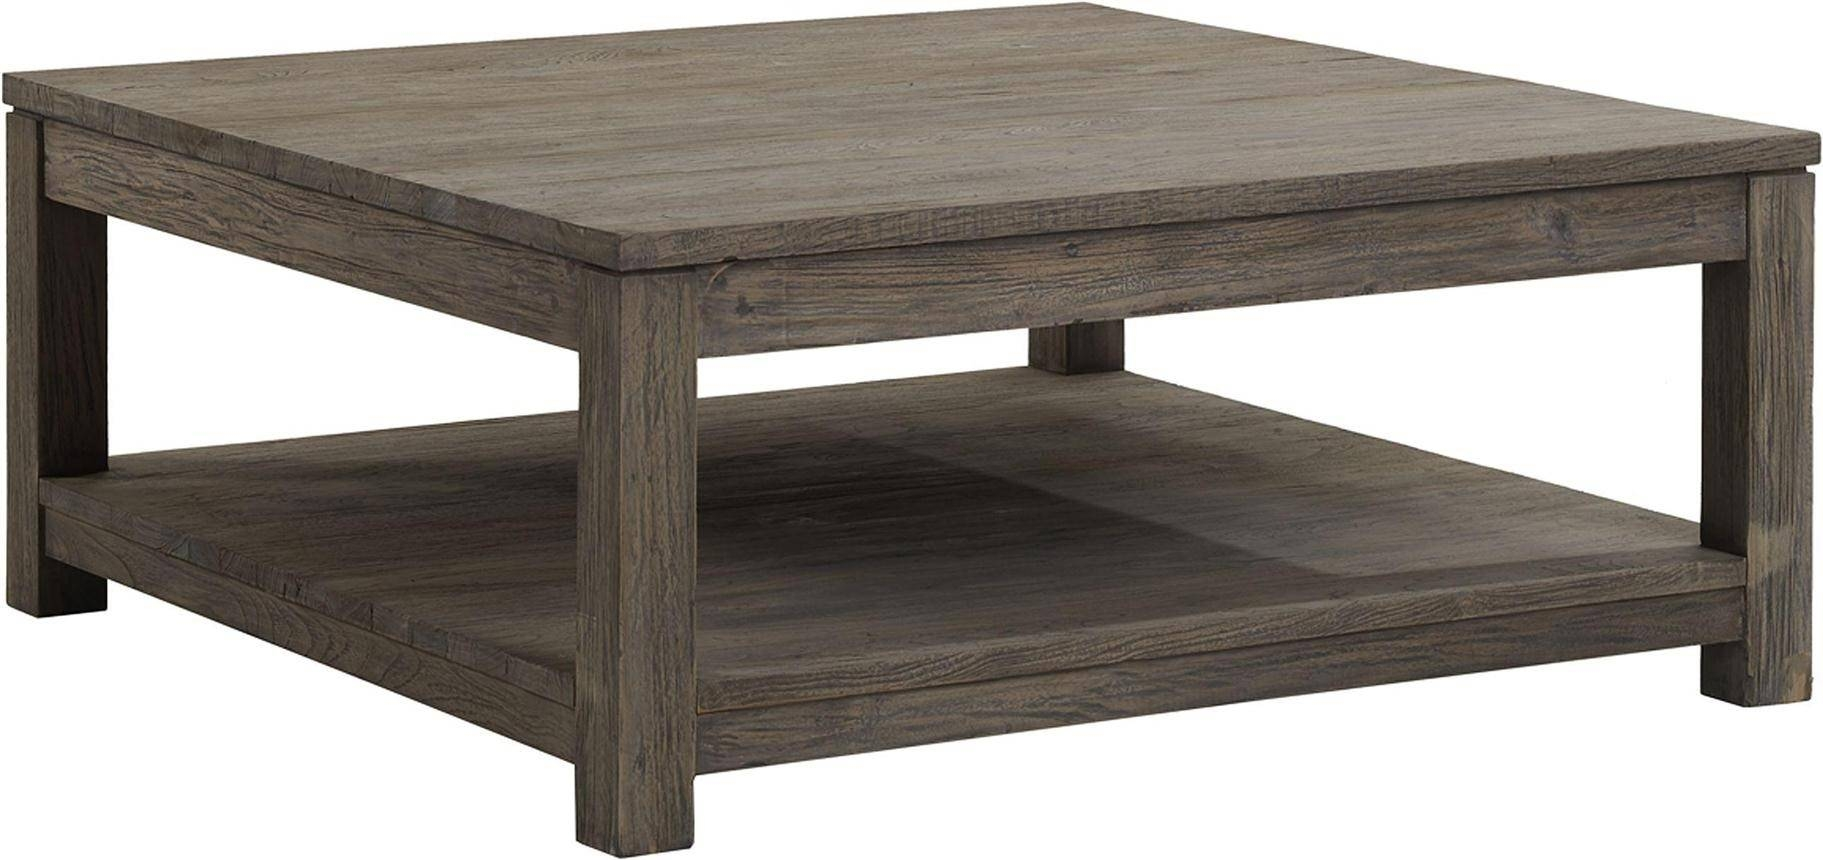 Furniture: Simple Big Square Coffee Tables Designs Large Square pertaining to Big Square Coffee Tables (Image 24 of 30)